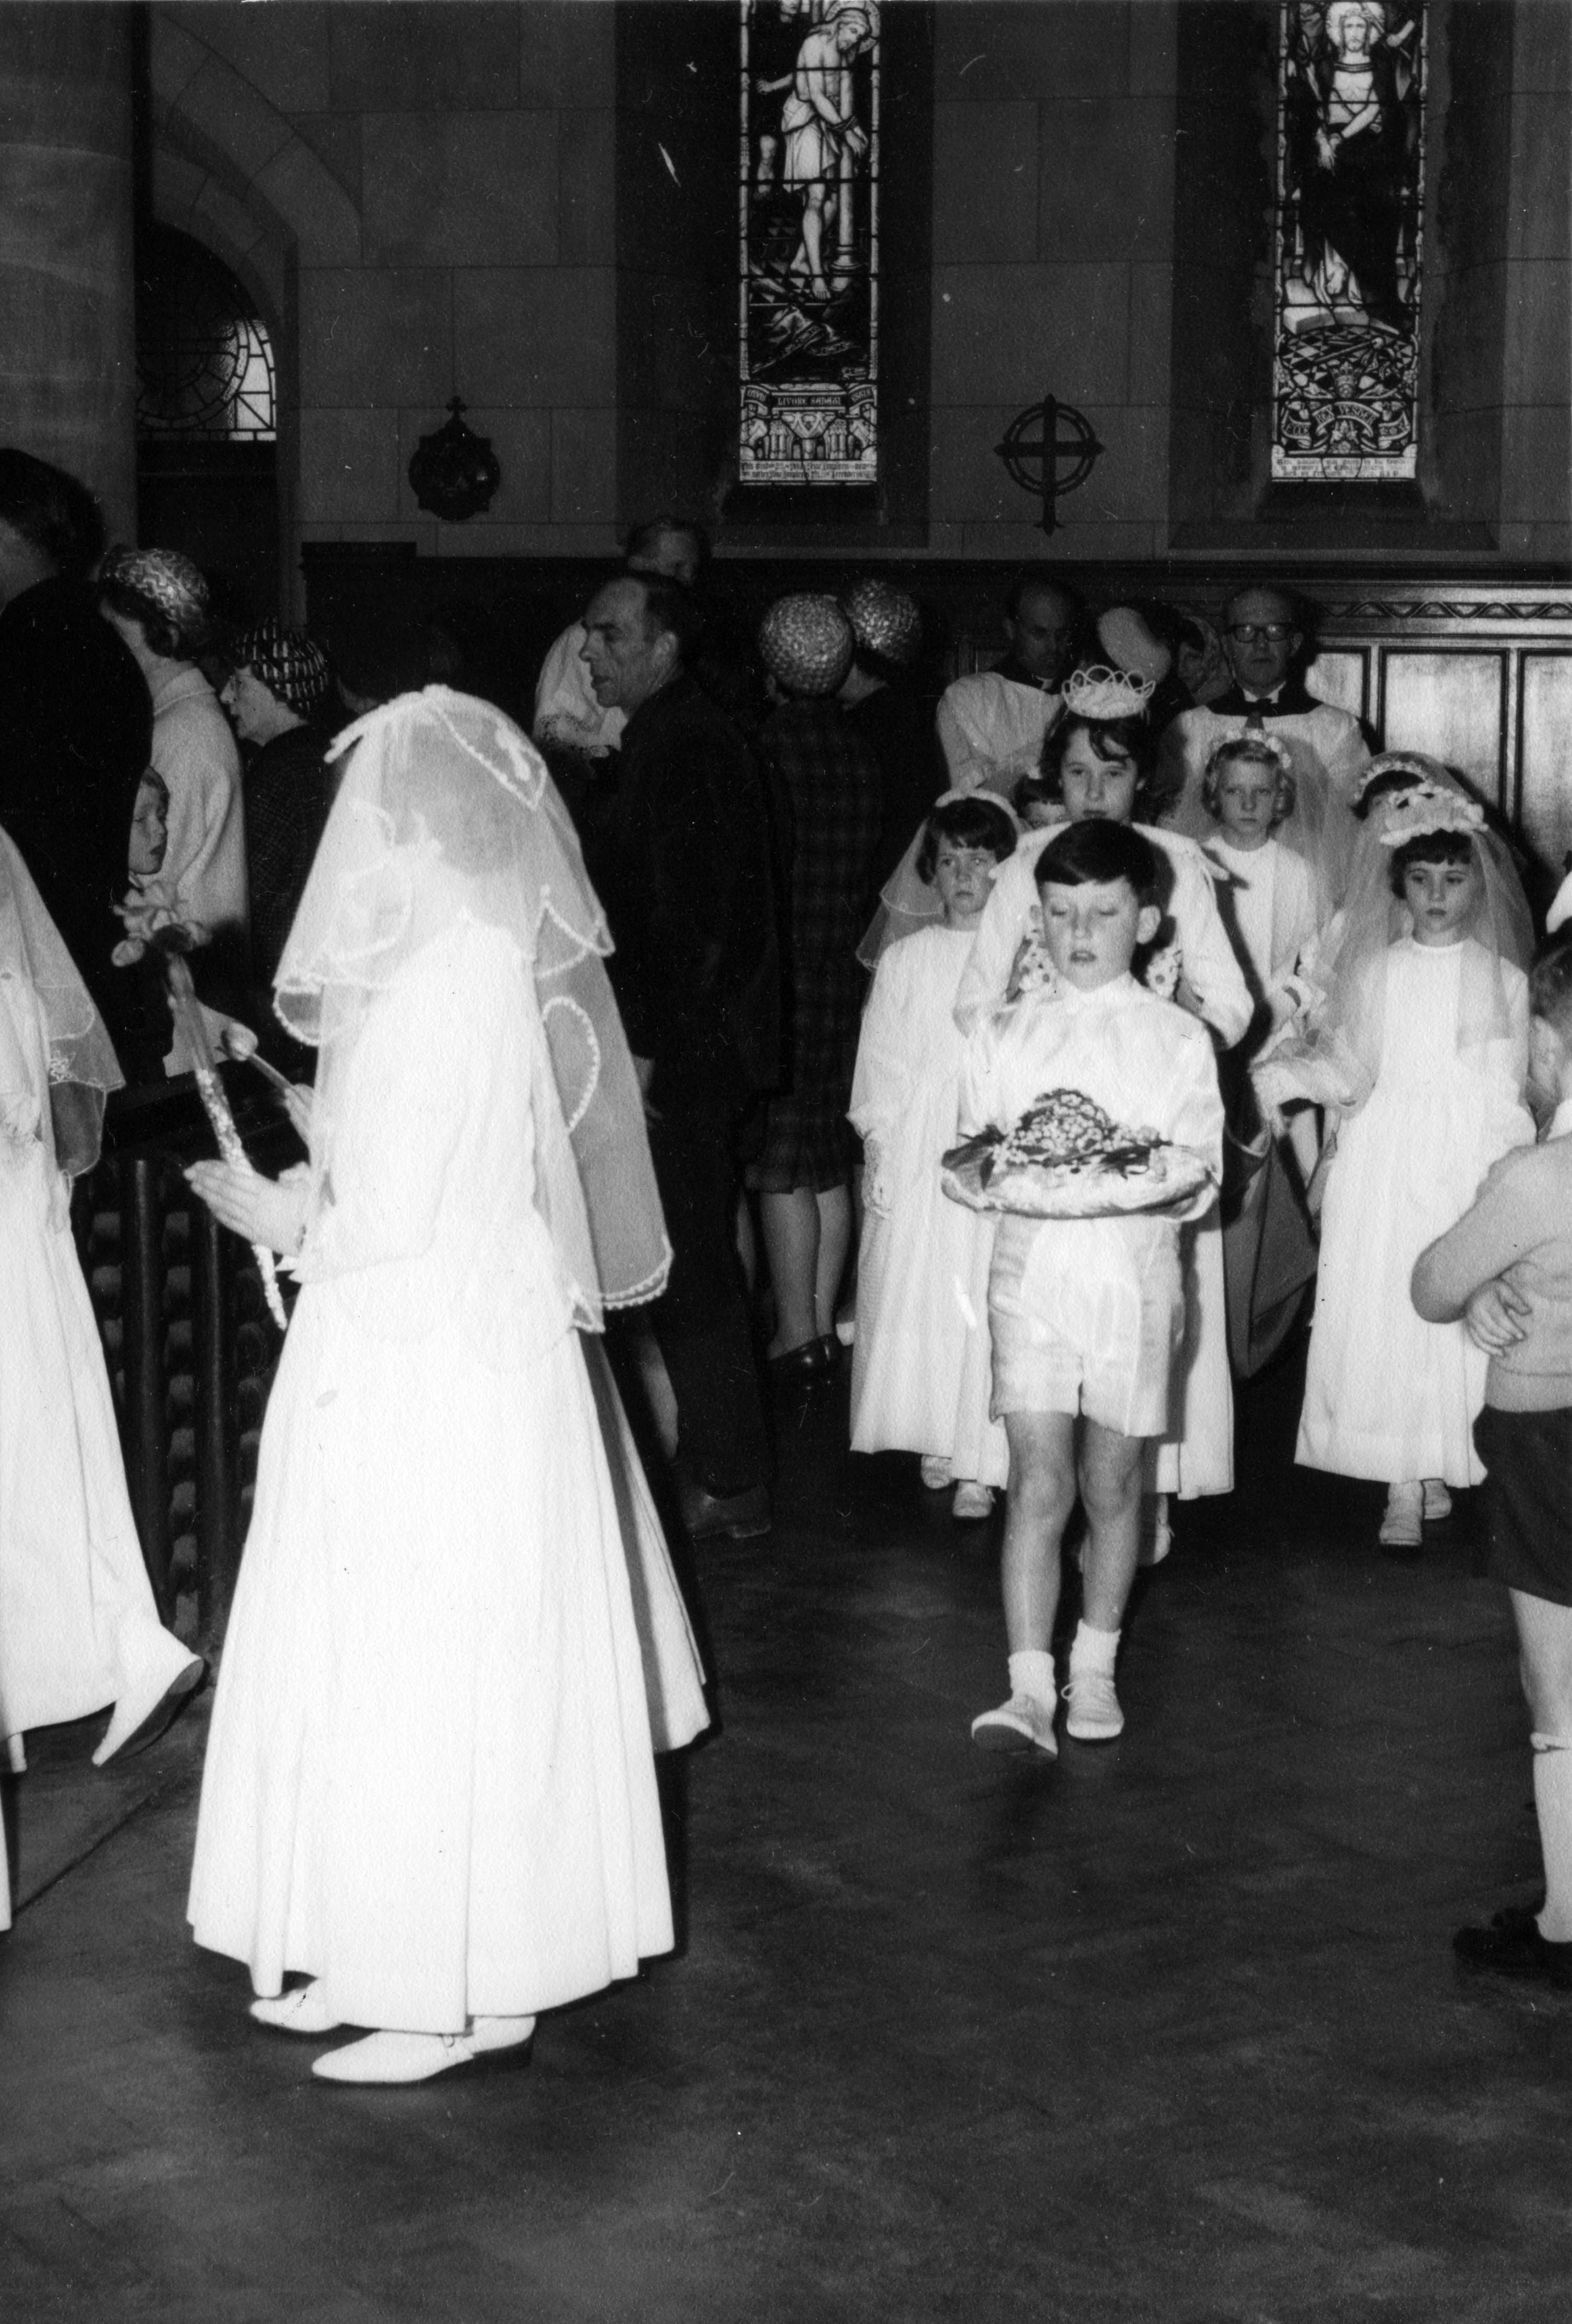 May procession 1967